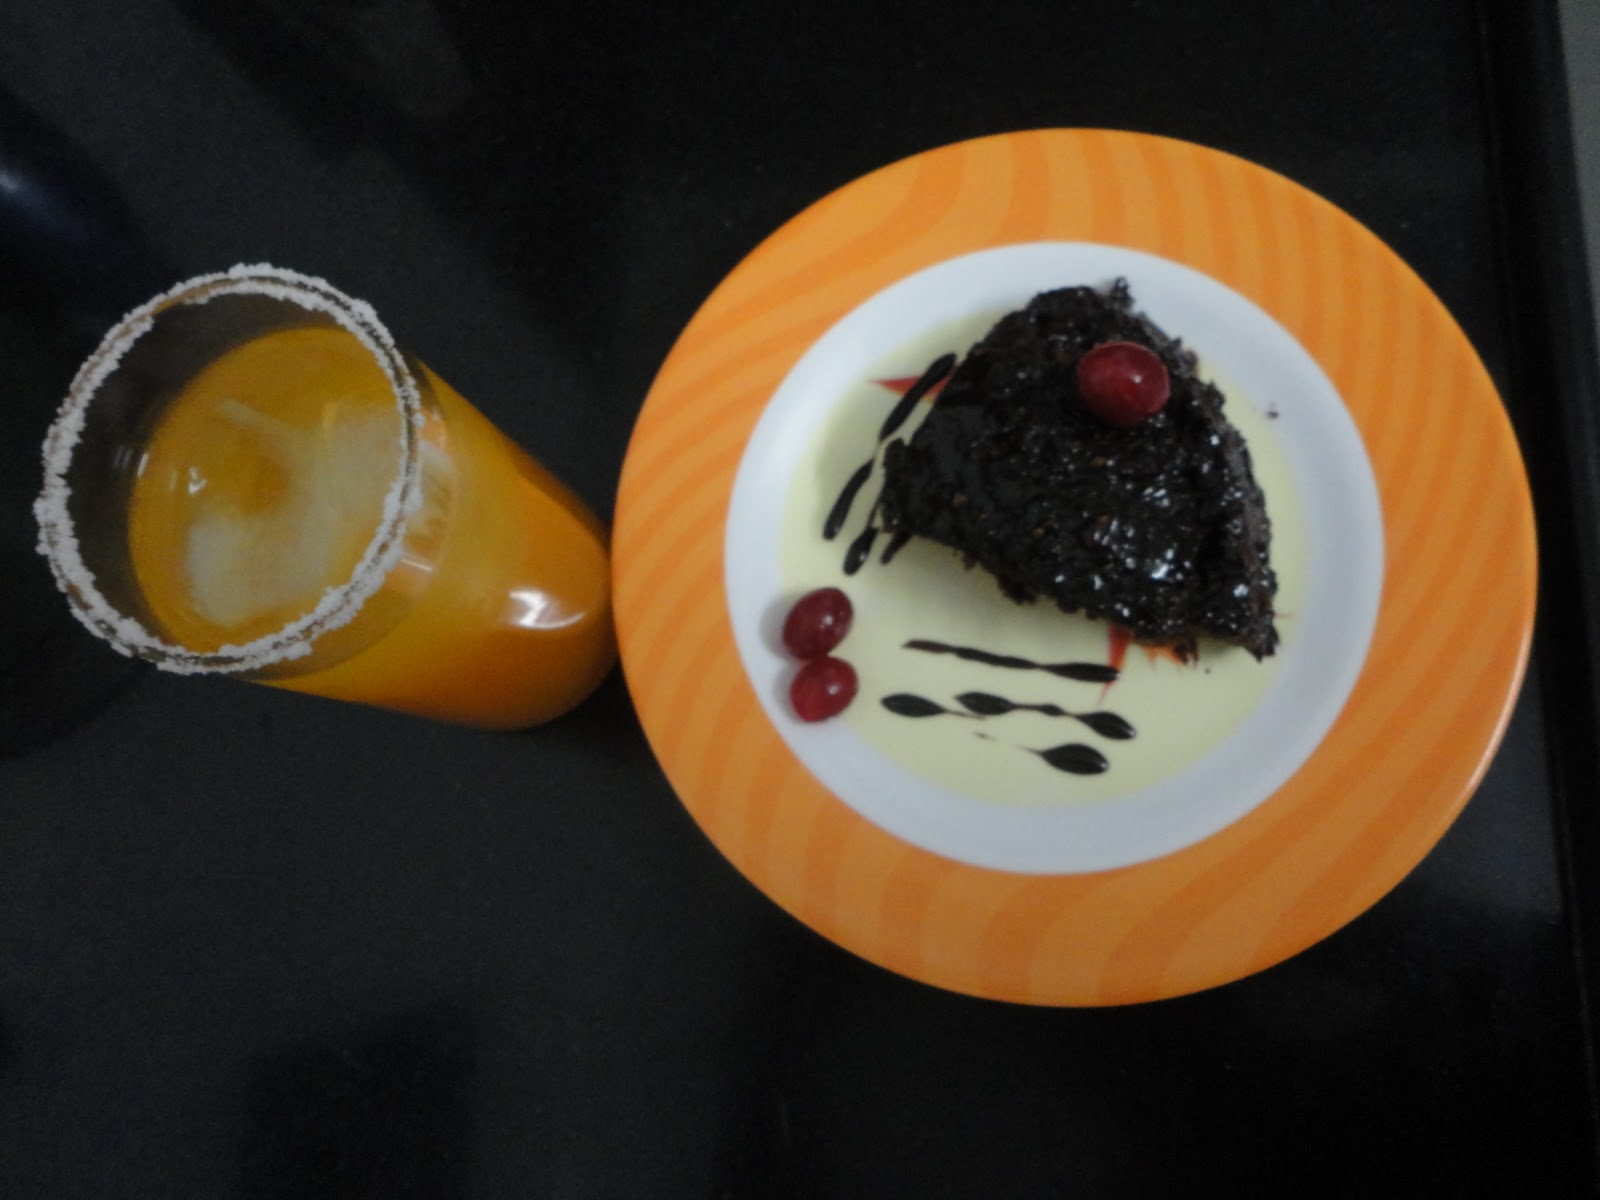 Cake Decoration With Chocolate Syrup : And my life goes on...: Chocolate cake with Hot chocolate ...